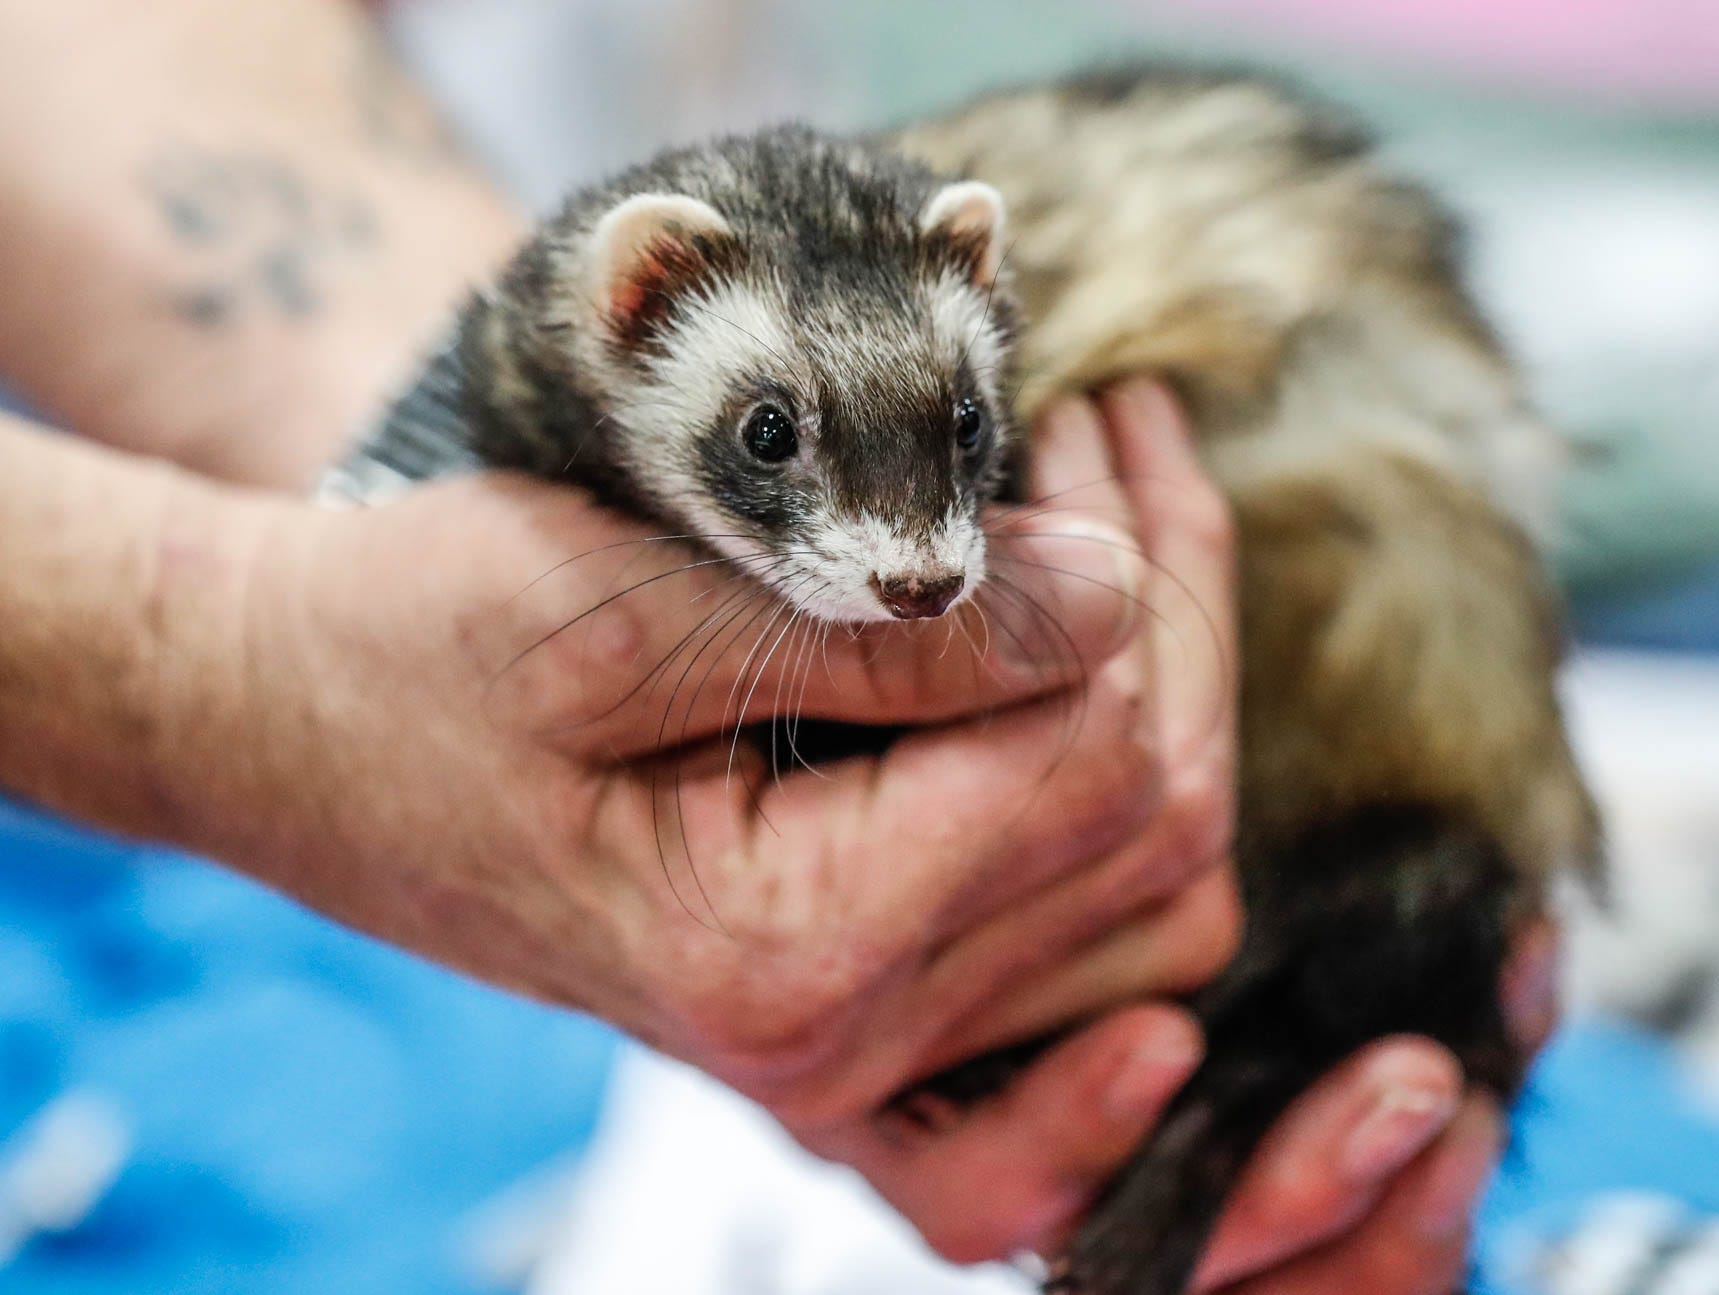 A ferret named Miss Kitty from the Five Points Ferret Rescue greets guests at the Great Indy Pet Expo, held at the Indiana State Fairgrounds on Sat. Nov. 10, 2018.